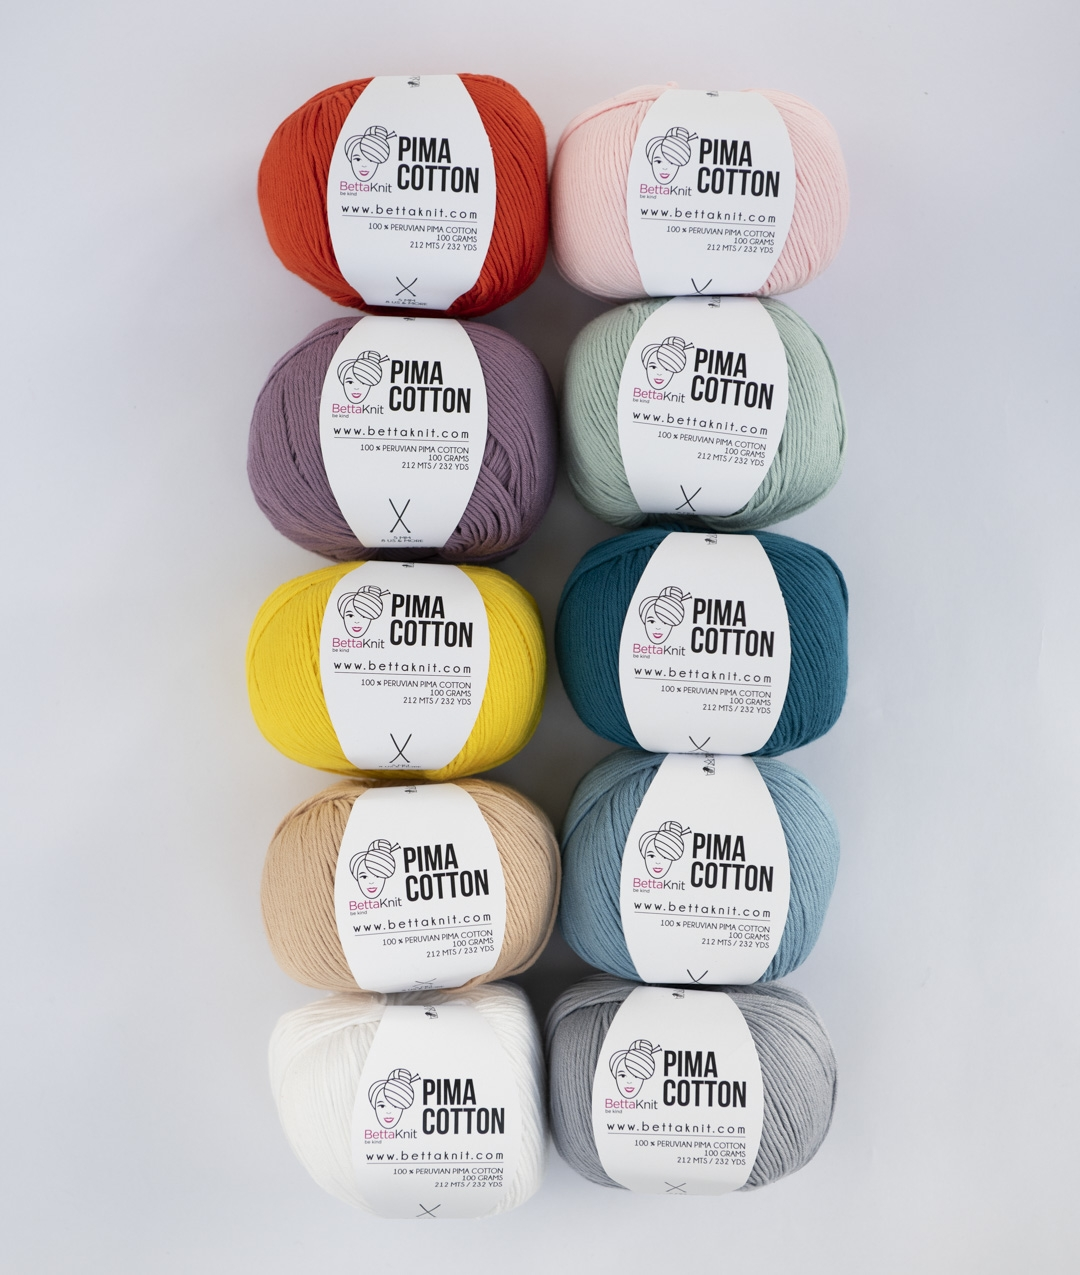 Pack of Yarn - Pima Cotton Pack - 10 balls - 1